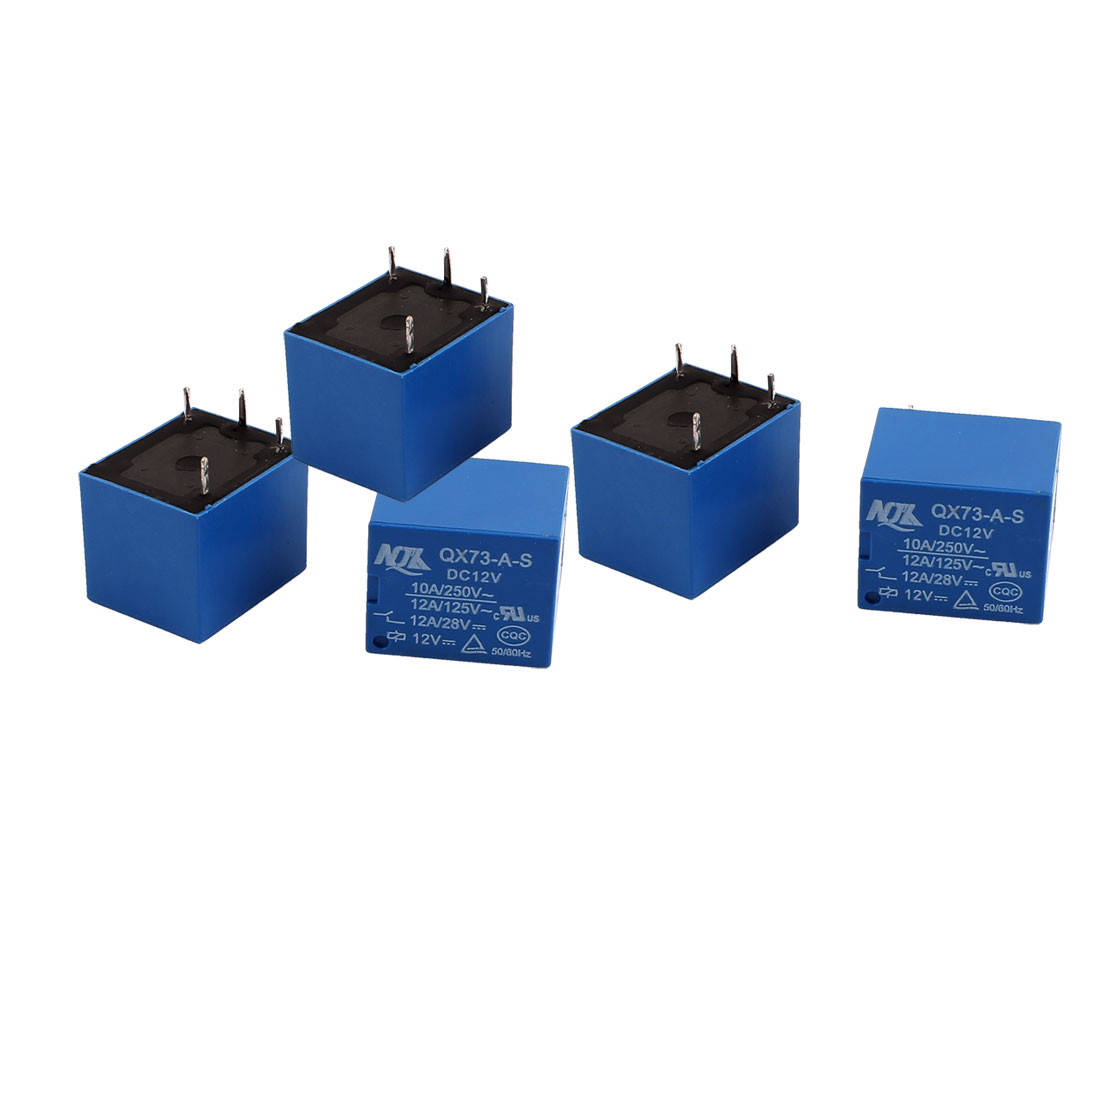 5 Pcs DC 12V 250VAC 10A 125VAC 12A 4 Terminals Vehicle Changeover Power Relay Blue